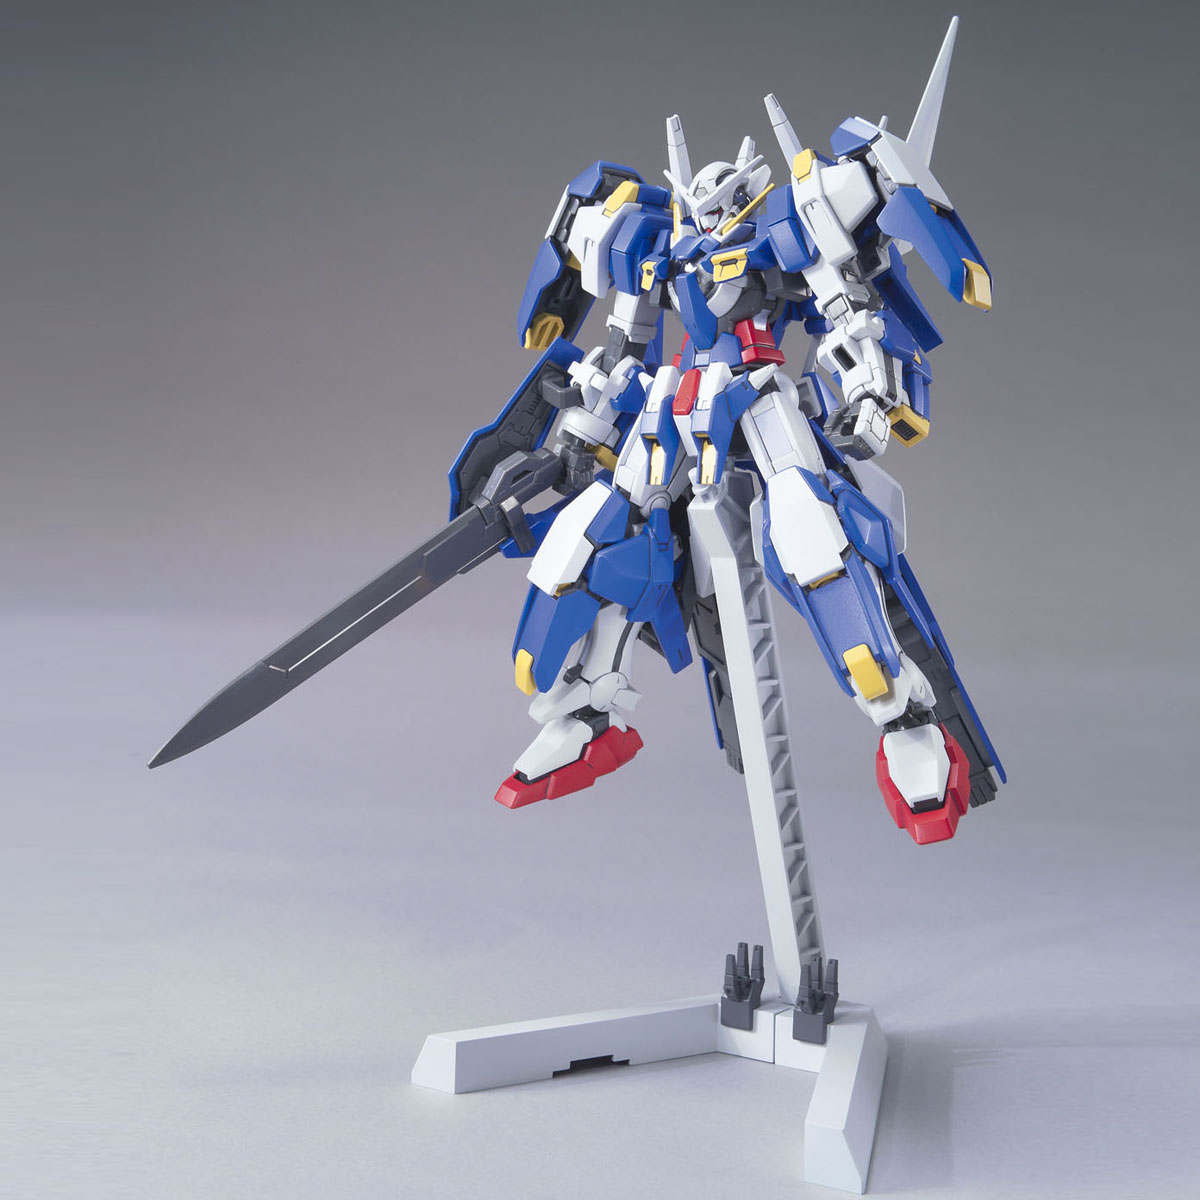 6740HG 1/144 GN-001/hs-A01D ガンダム アヴァランチエクシアダッシュ [Gundam Avalanche Exia`] 0163278 5059024 4573102590244 4543112632784